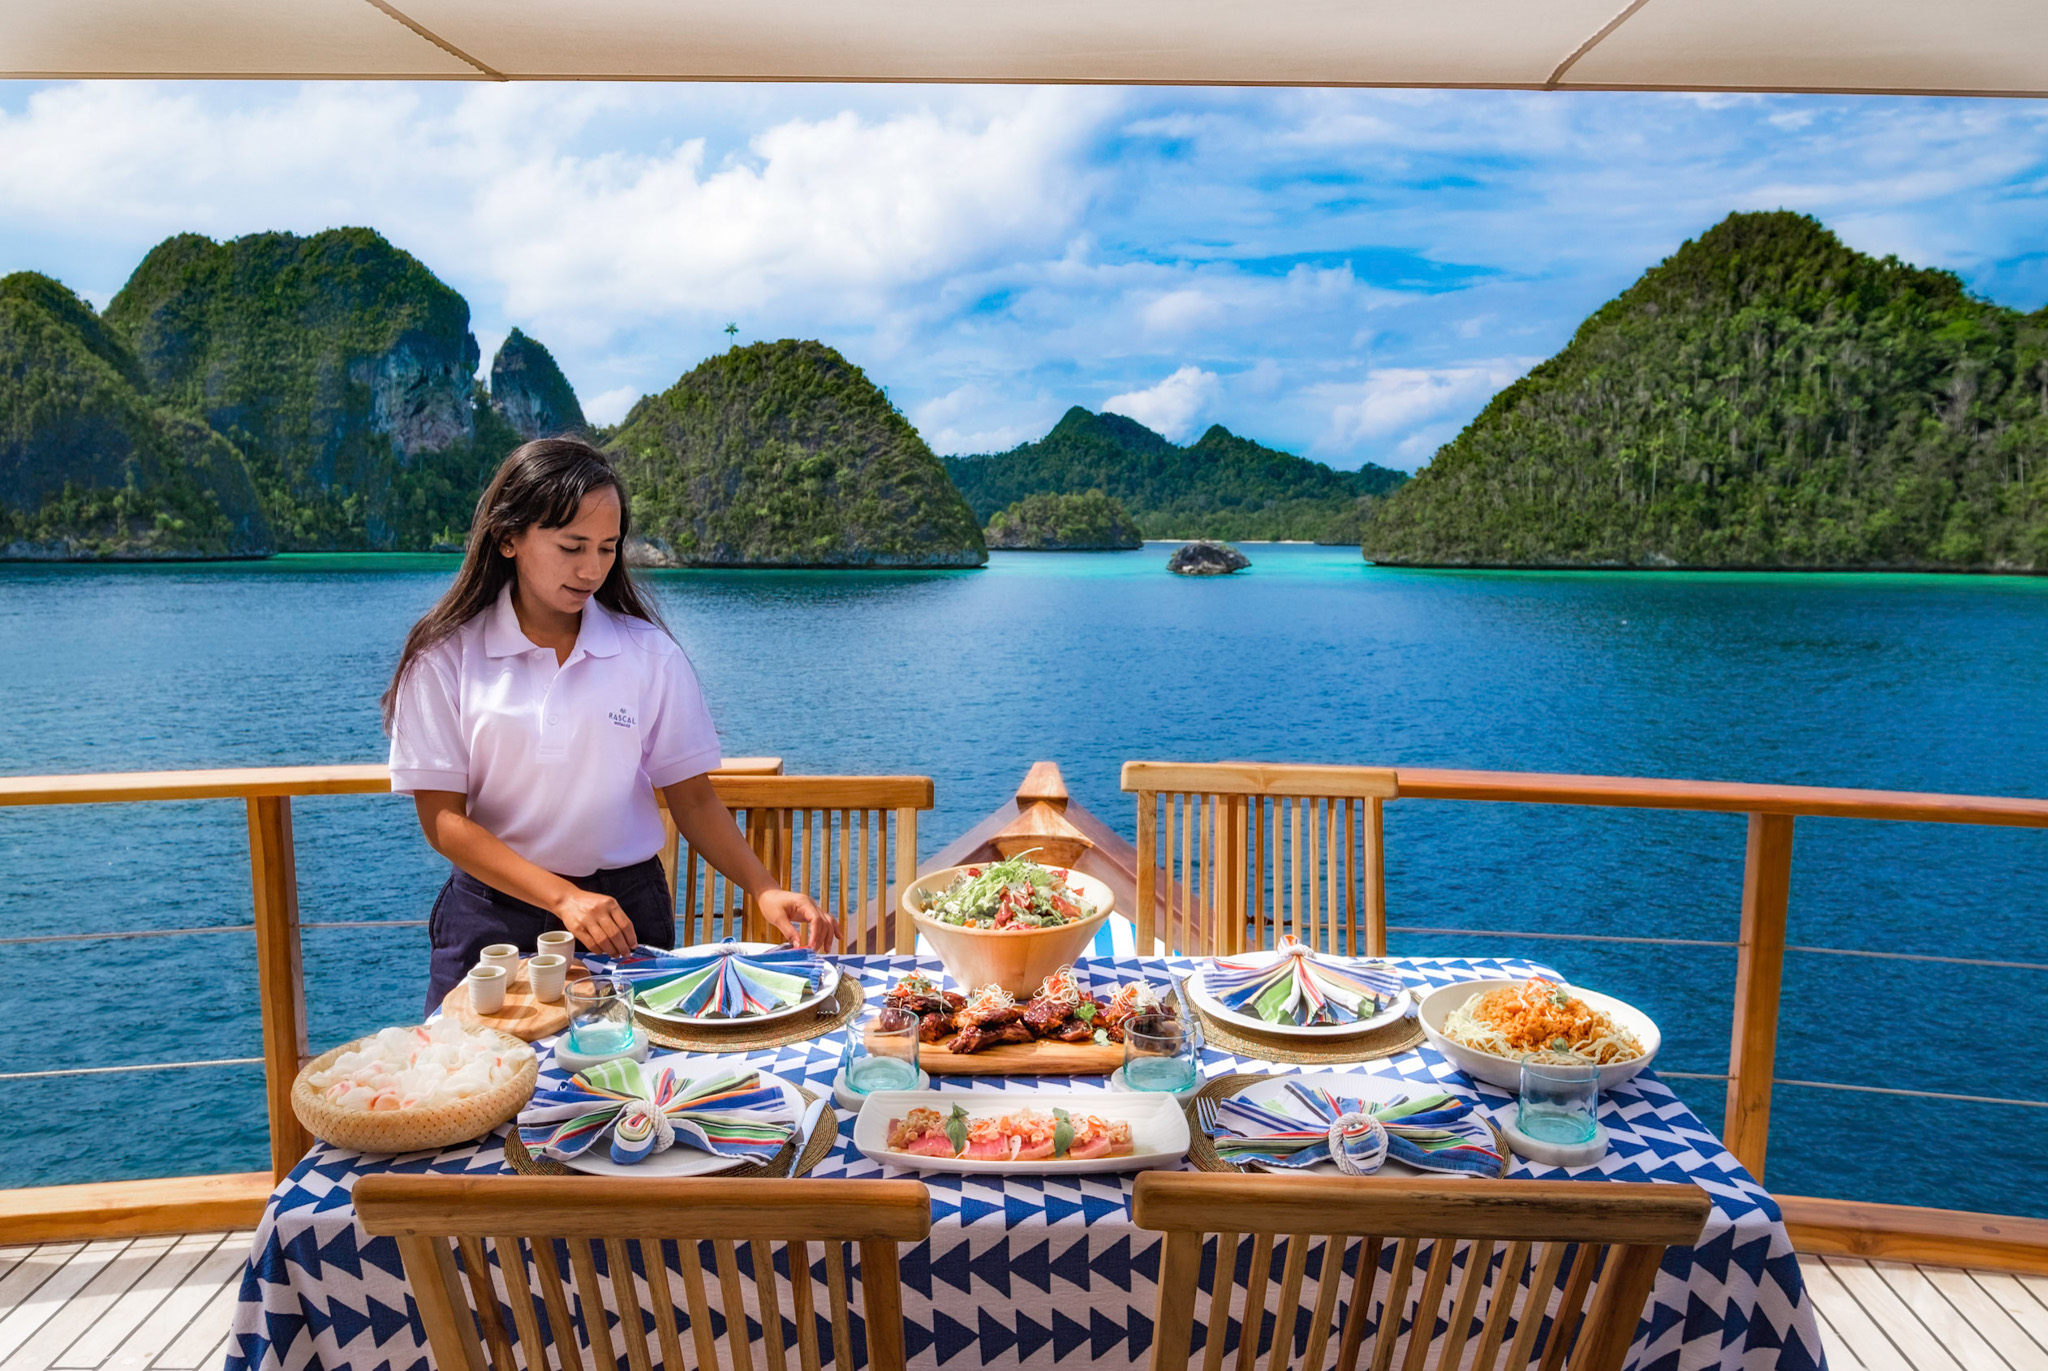 stewardess sets table on aft deck with Indonesian islands in background